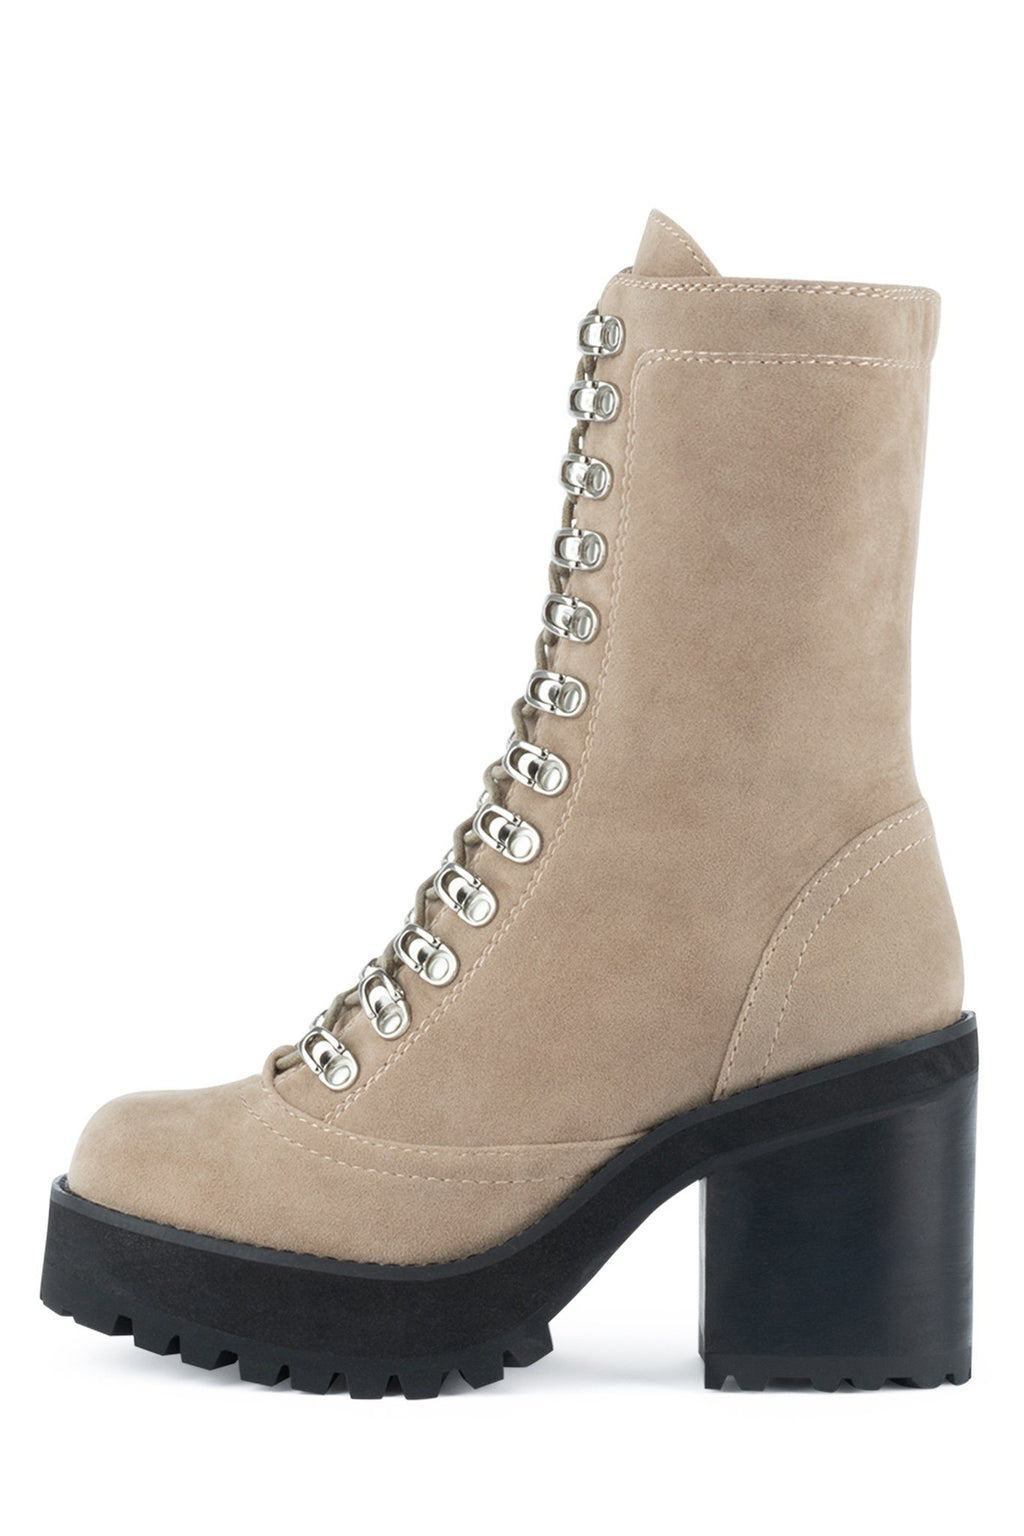 SEQUOIA-2 - Jeffrey Campbell